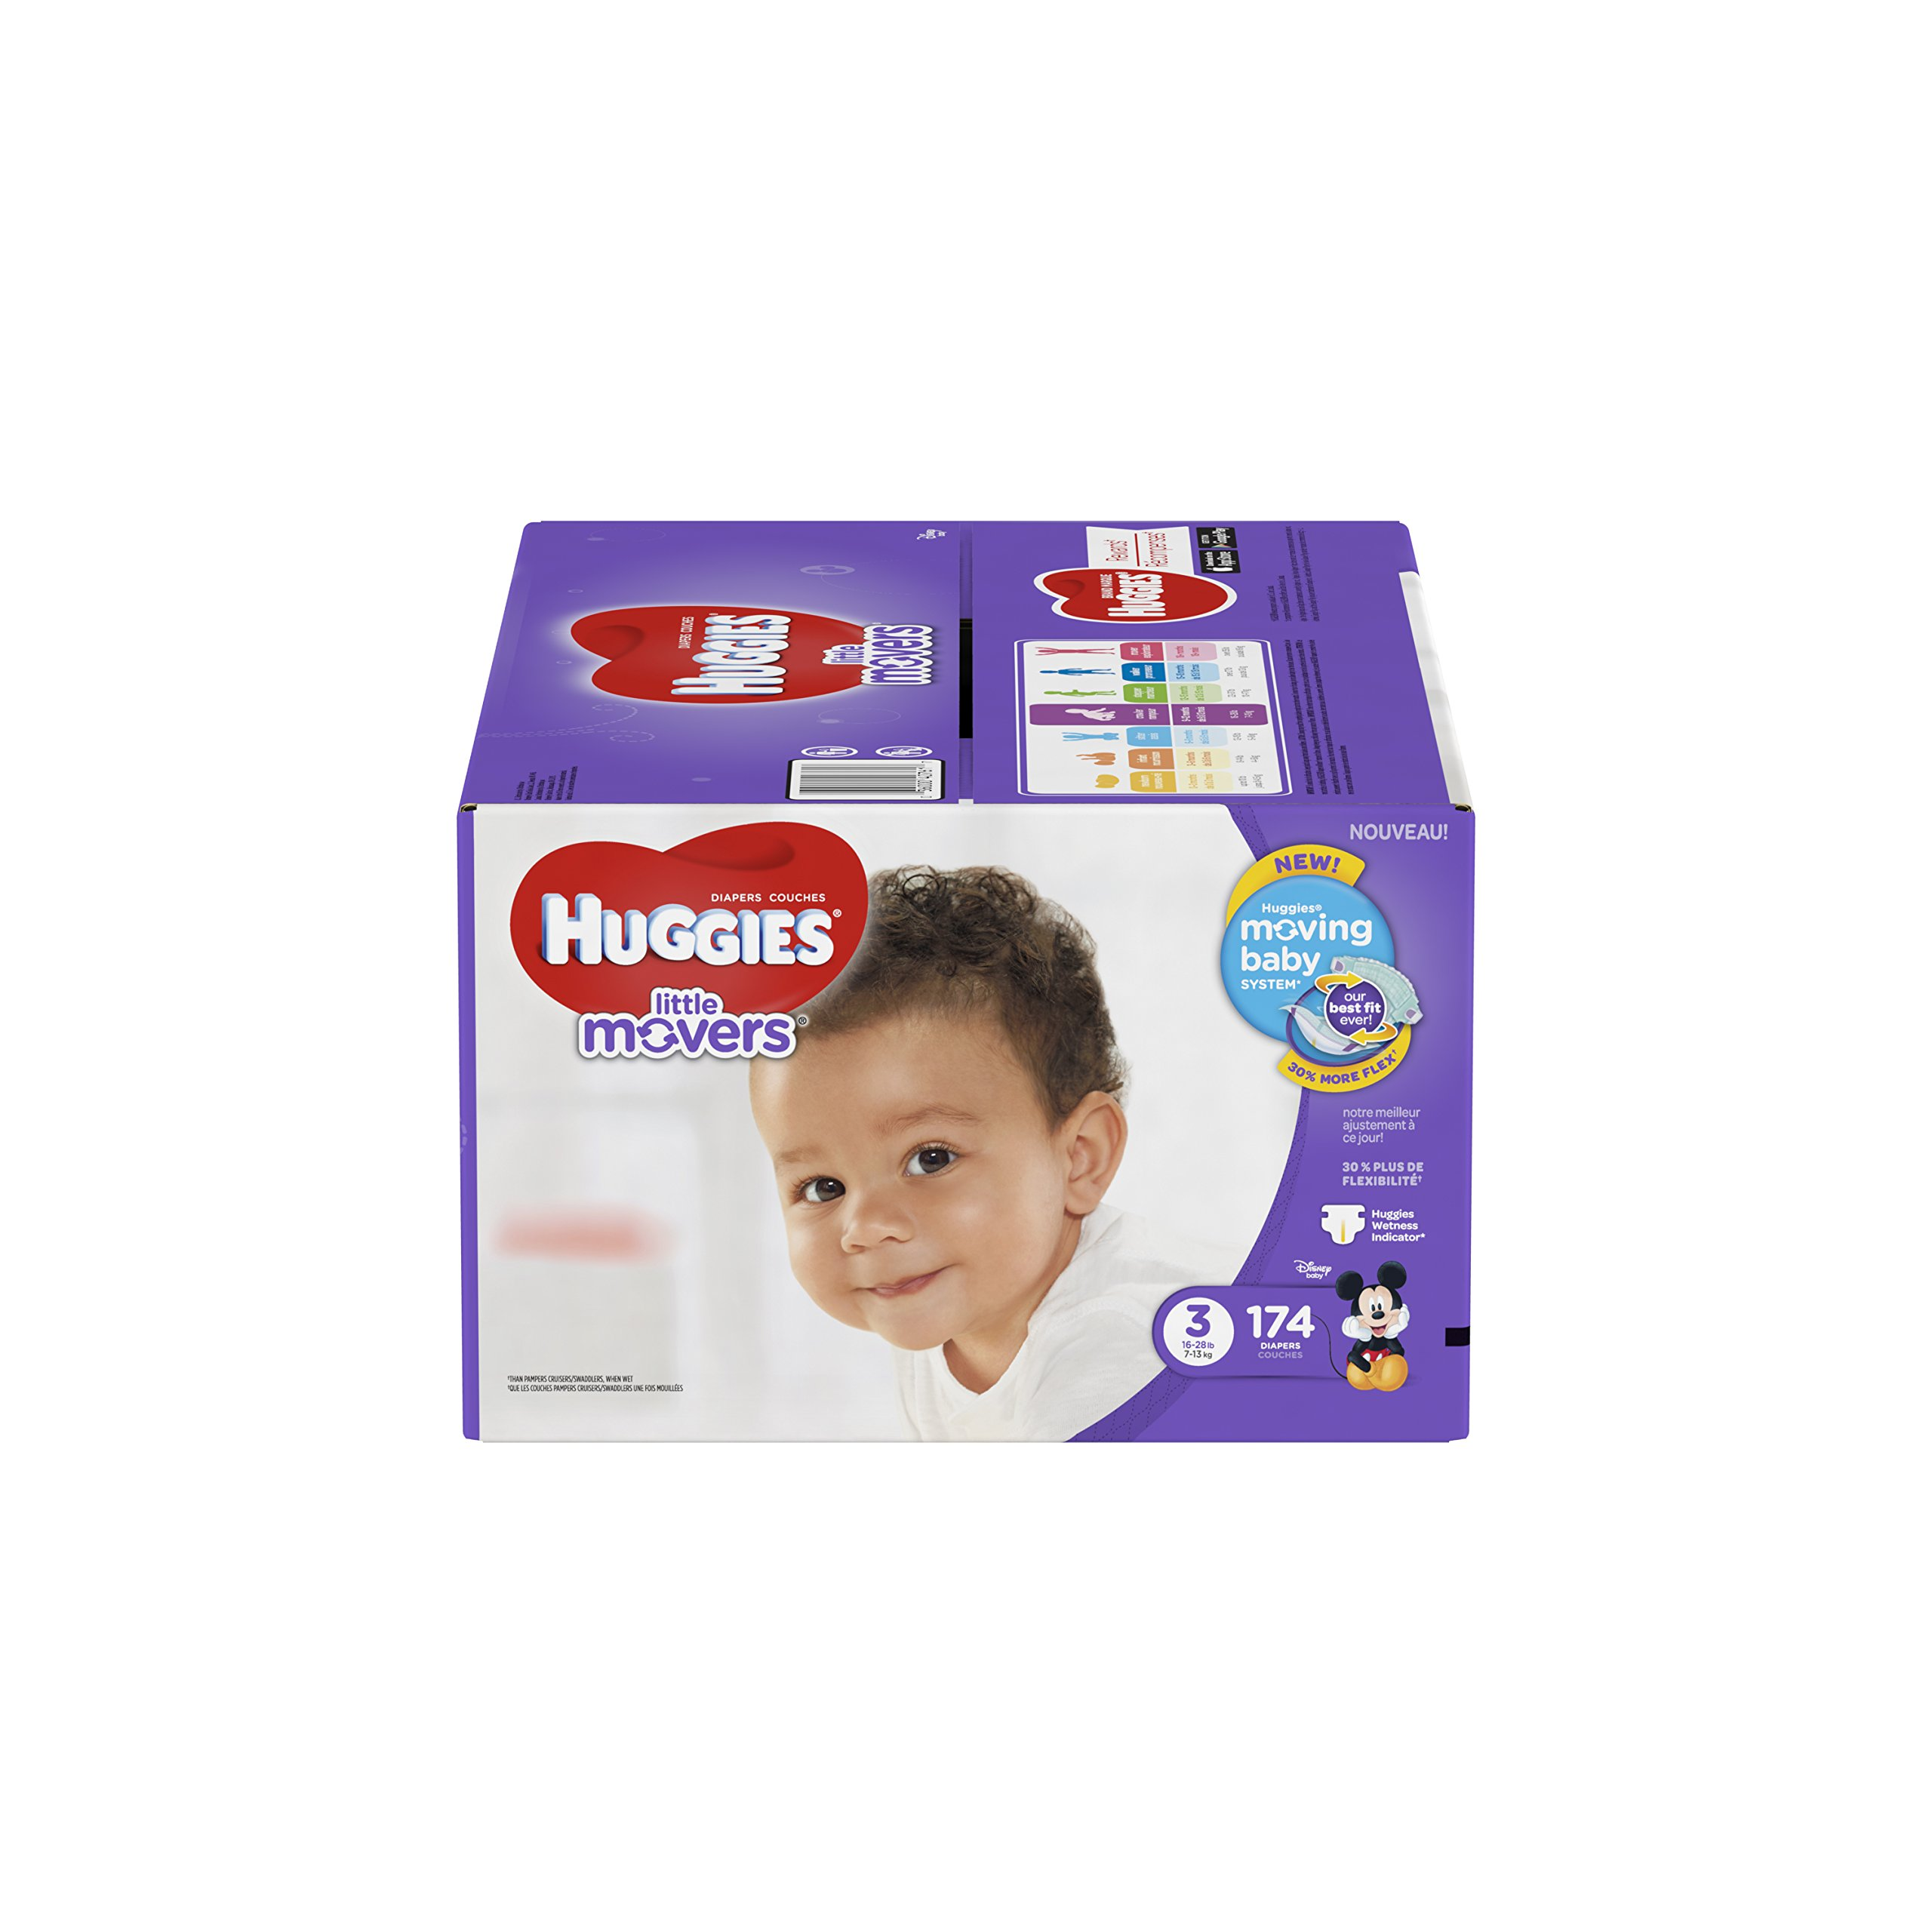 HUGGIES Little Movers Diapers, Size 3, For 16-28 lbs., Box of 174 Baby Diapers for Active Babies, Packaging May Vary